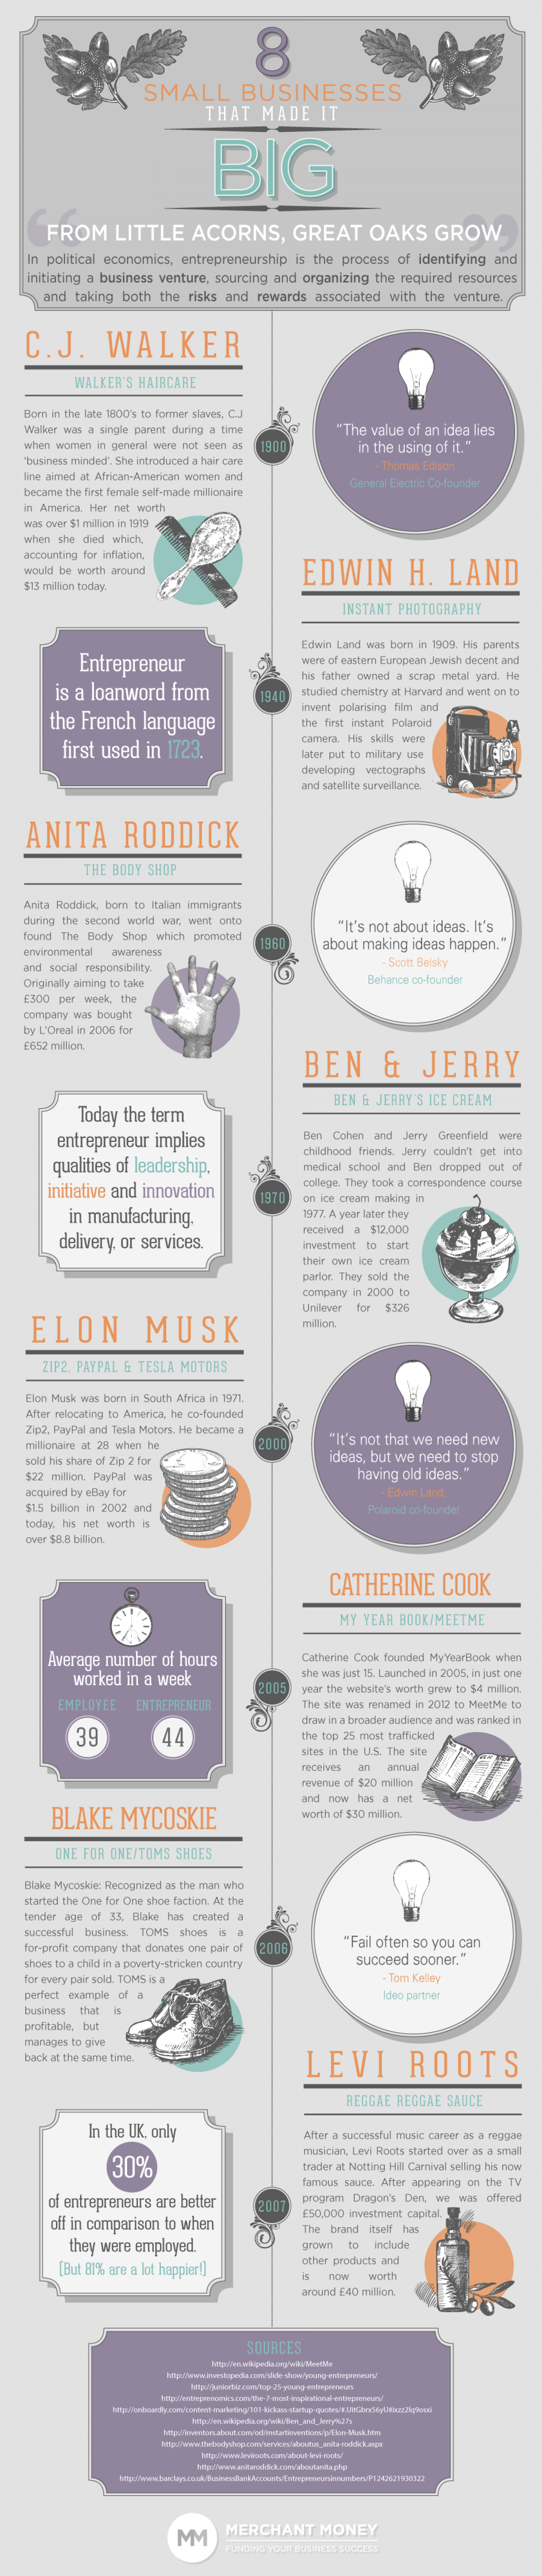 8 Small Business That Made It Big: The Journey of Entrepreneurship  Infographic